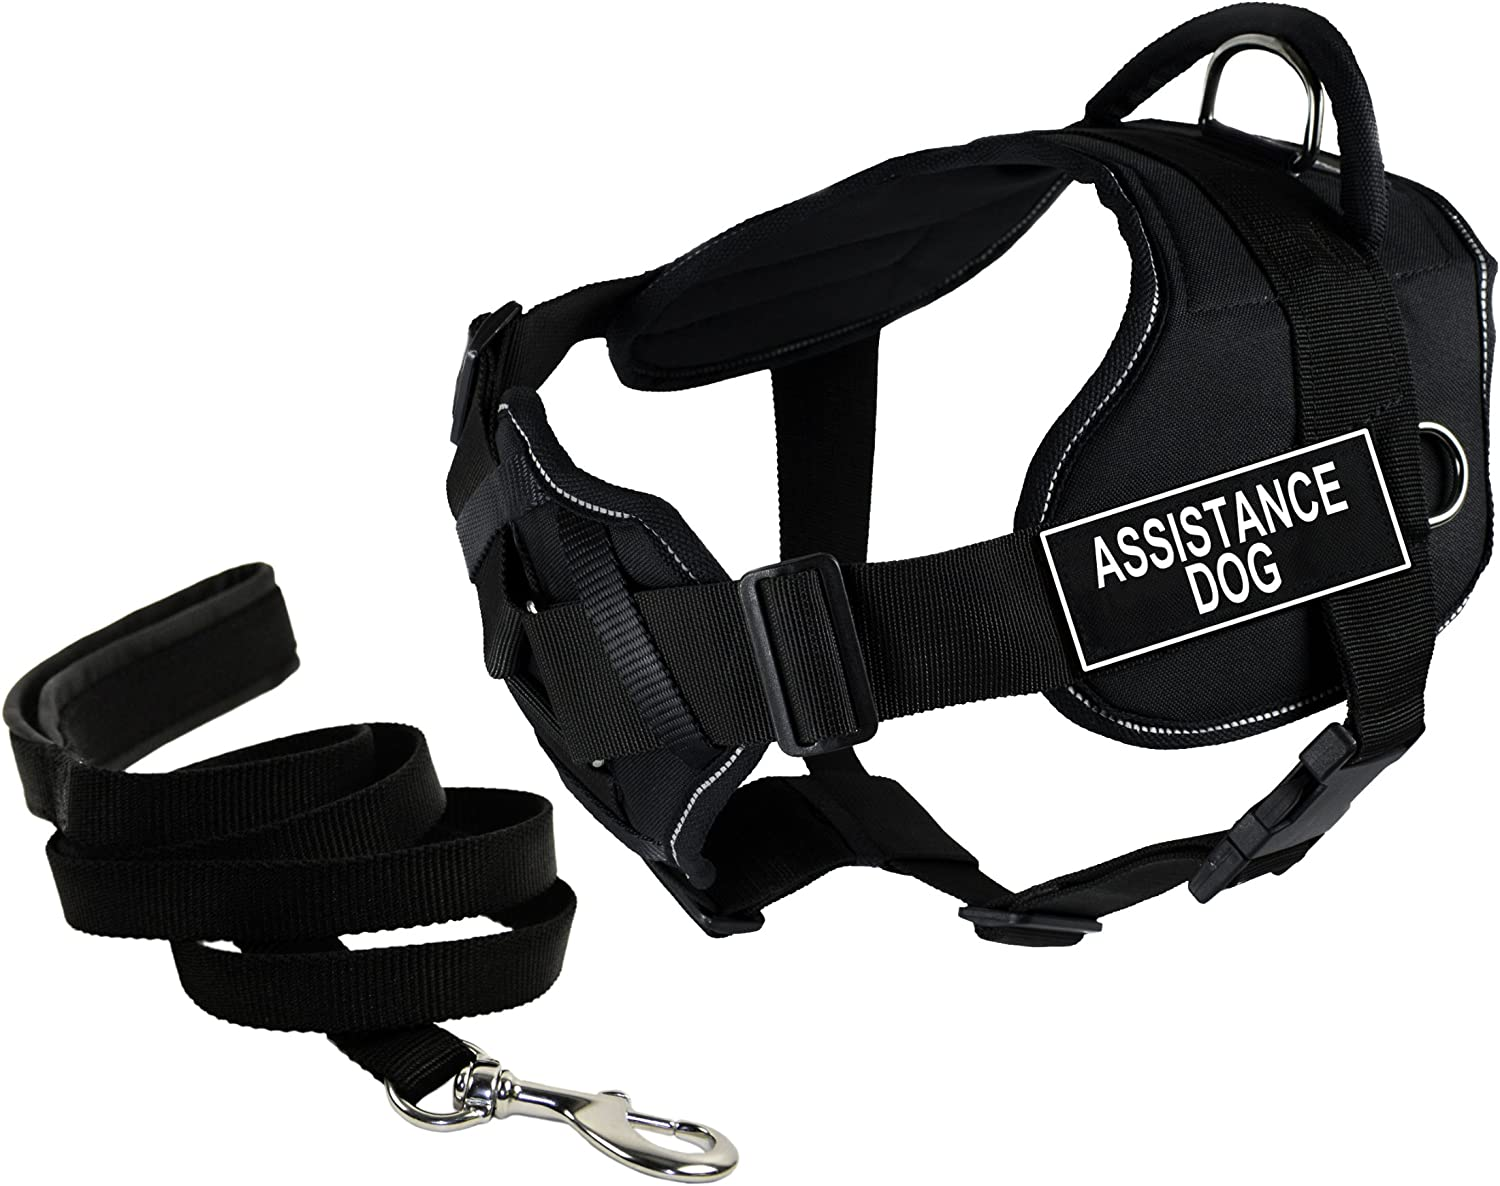 Dean & Tyler's DT Fun Chest Support ASSISTANCE DOG Harness with Reflective Trim, Small, and 6 ft Padded Puppy Leash.